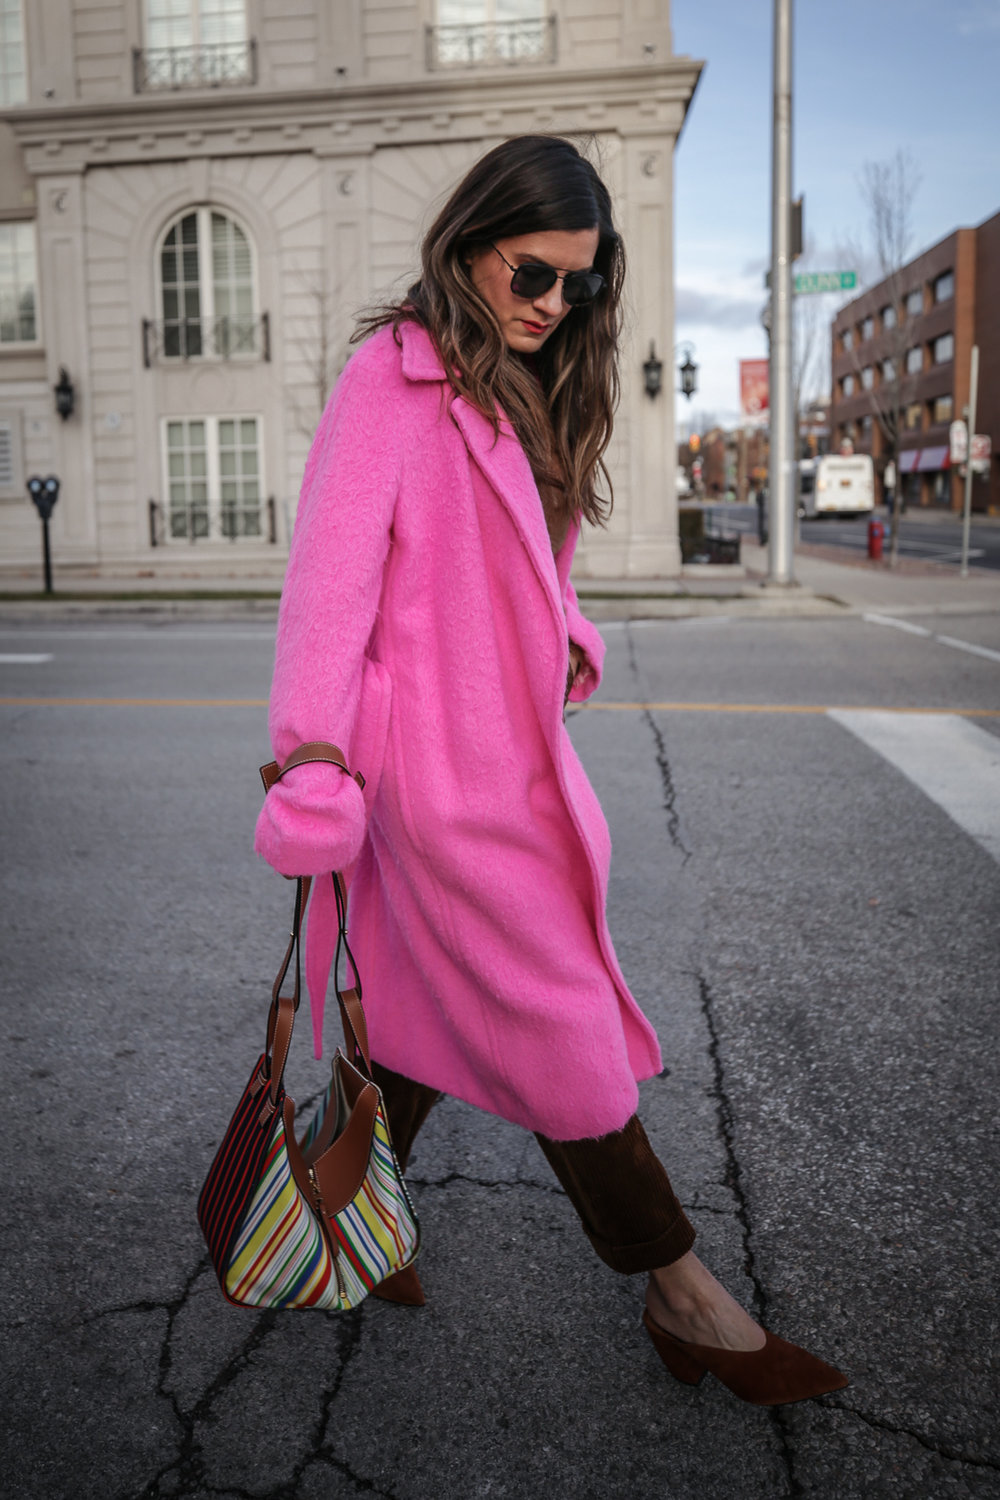 Nathalie Martin wearing Helmut Lang pink belt tie wool coat, brown corduroy pants, Zara brown textured sweater, Prada brown suede mules, Loewe striped Hammock bag, Bonlook Class sunglasses, street style, woahstyle.com_5151.jpg